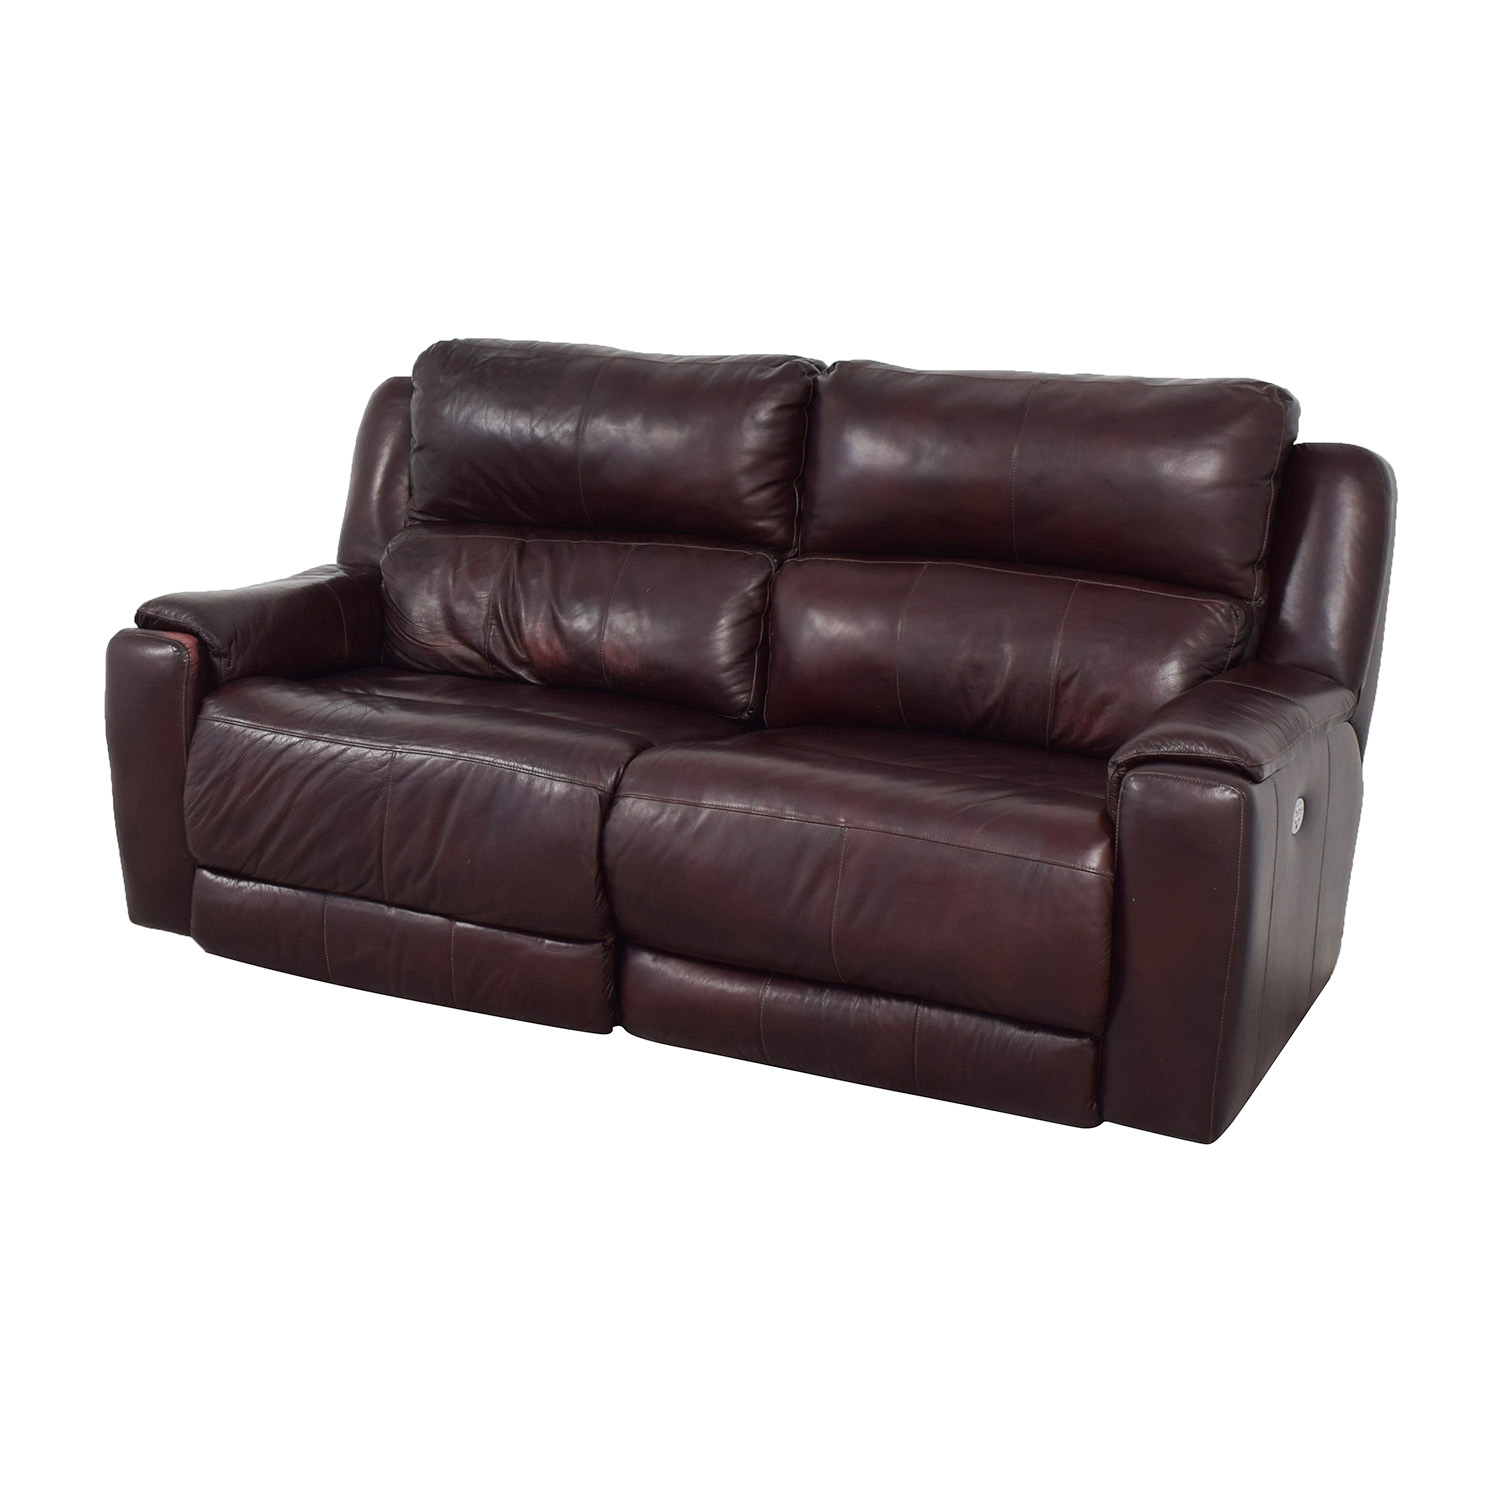 buy Raymour & Flanigan Raymour & Flanigan Brown Leather Electric Recliner online